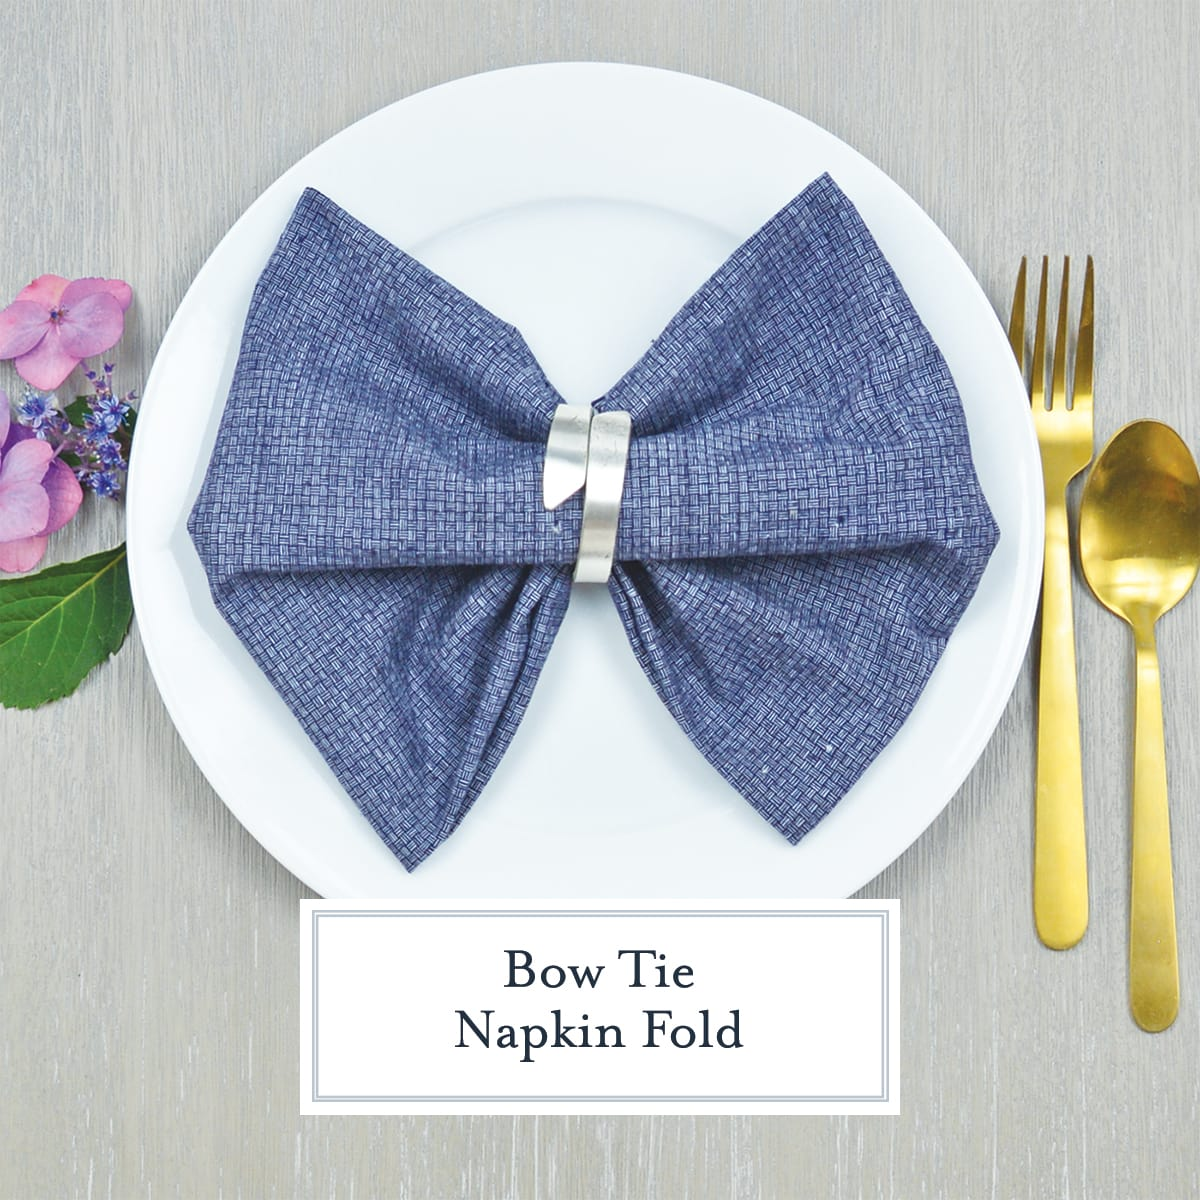 Bow Tie Napkin Fold Step By Step Photos Instructions